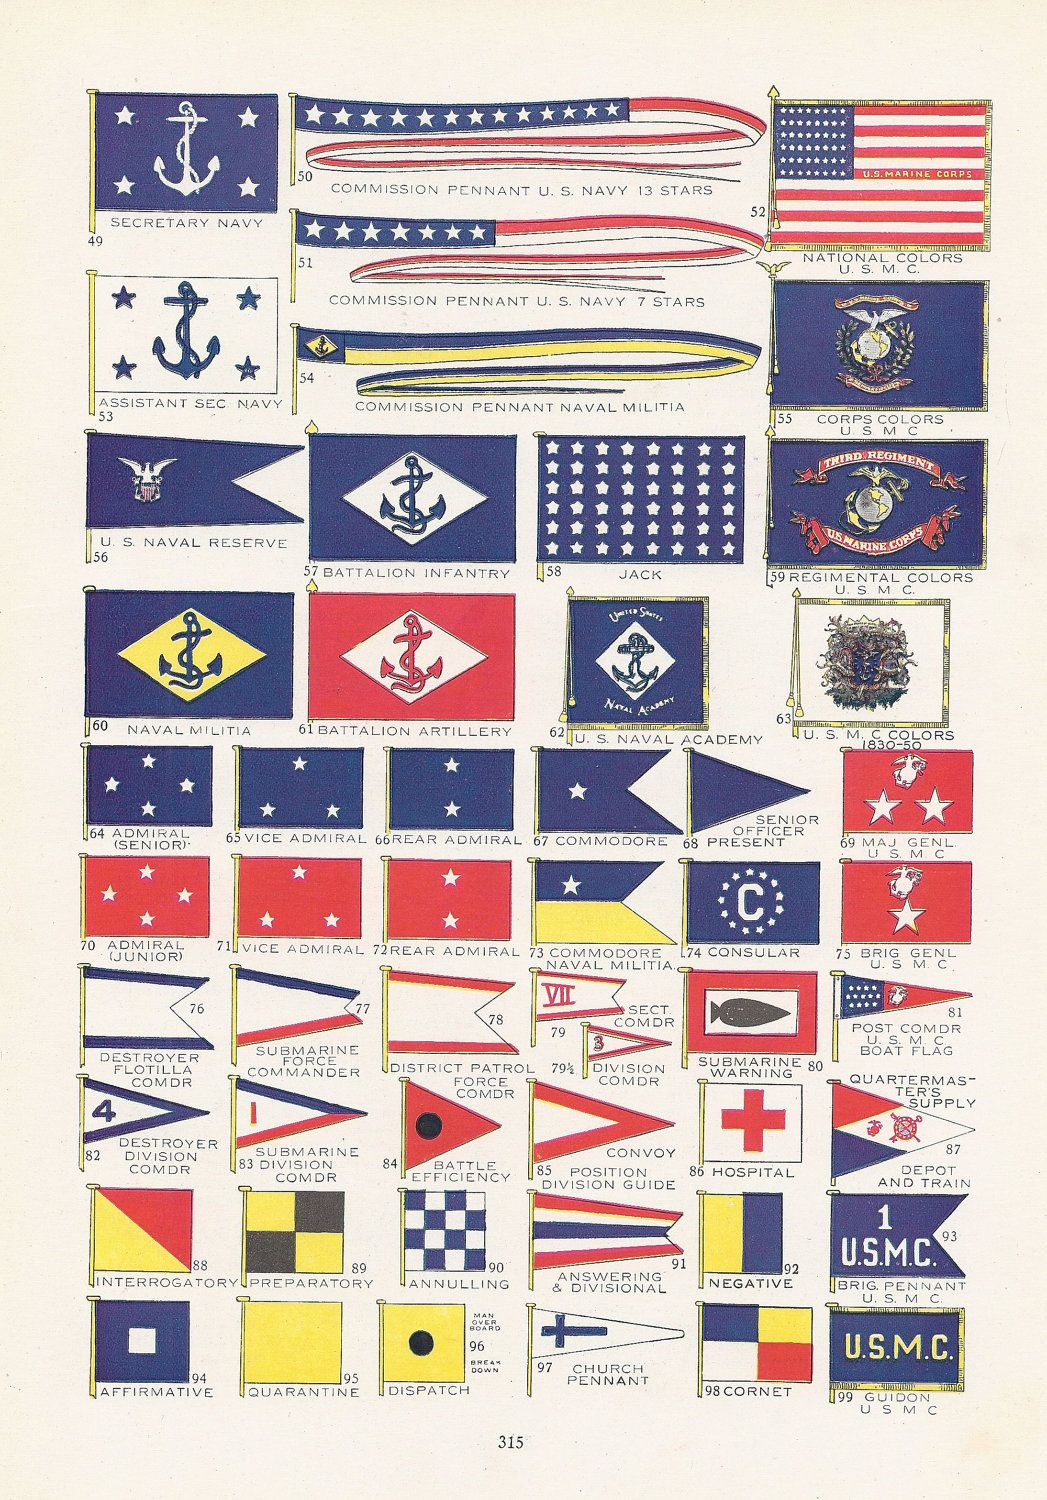 American Military Flags United States Navy And Marine Corps Vintage Illustration Patriotic World War I Era Red White And Blue 1917 Military Flag Flag Navy